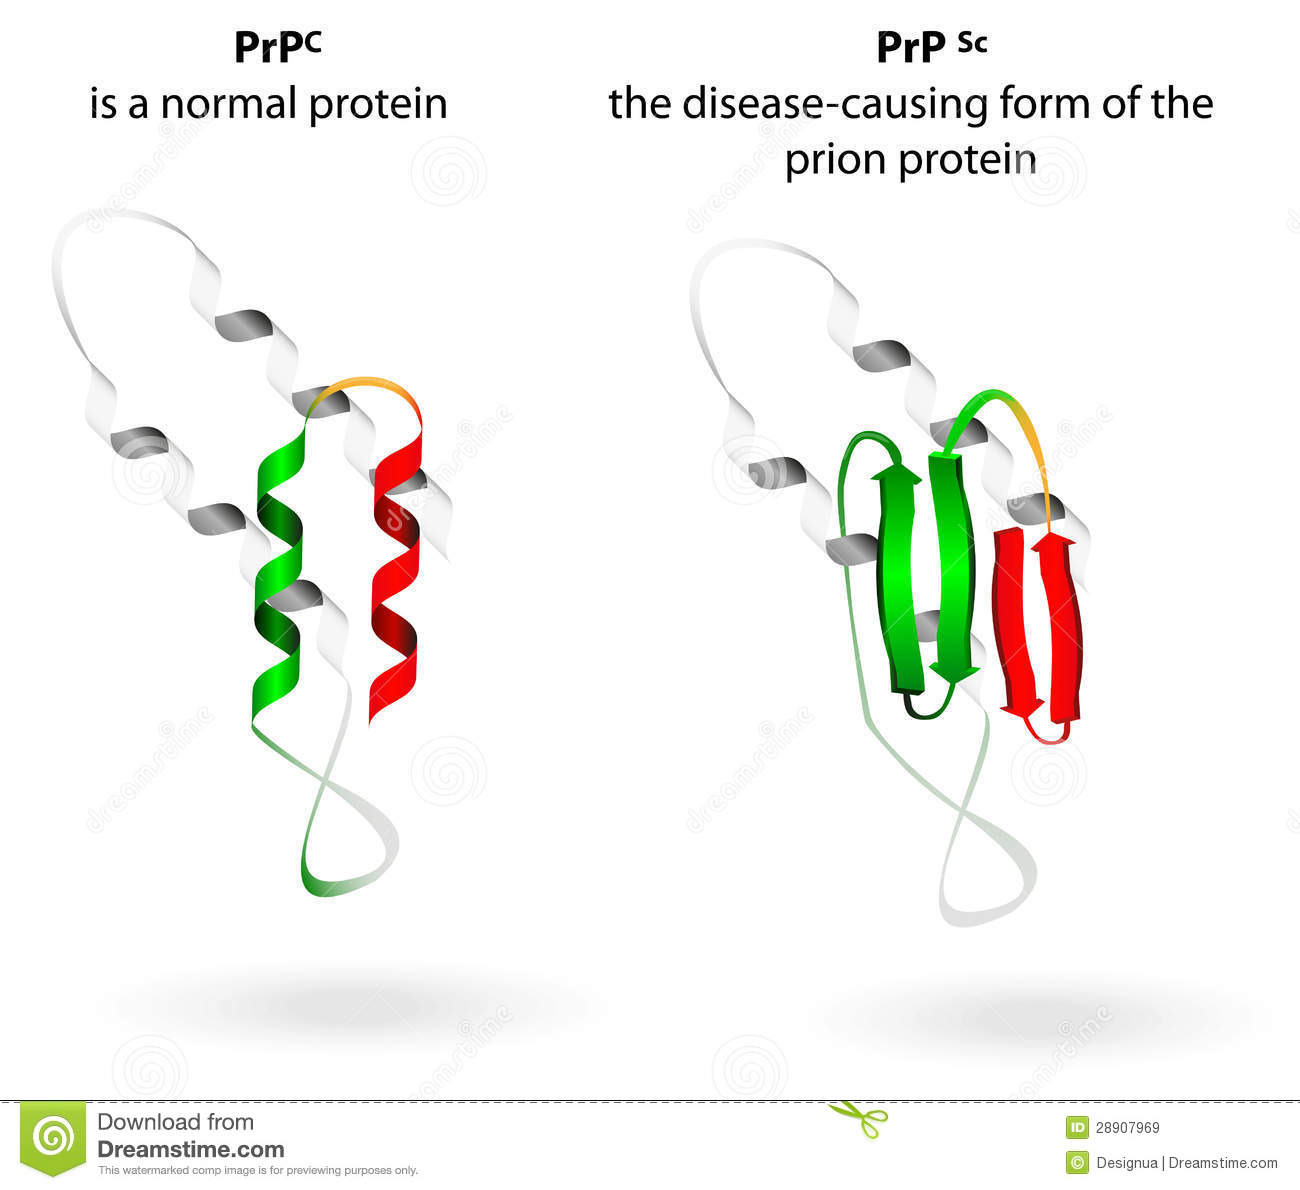 What Is a Prion?